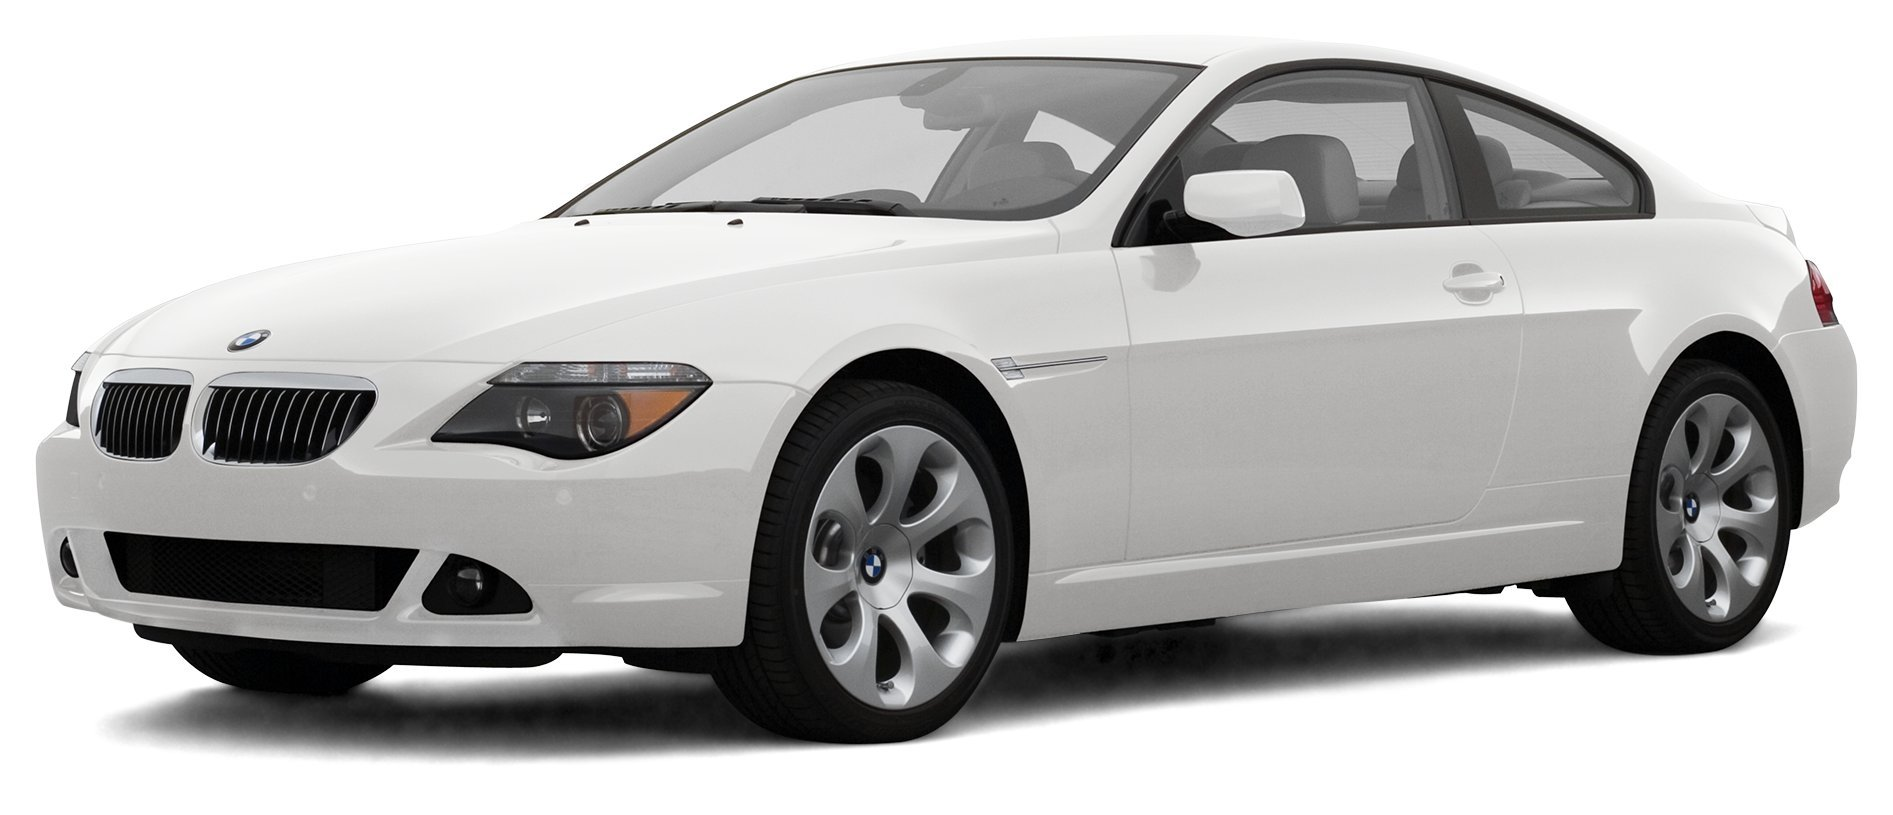 Amazon.com: 2007 BMW 650i Reviews, Images, and Specs: Vehicles